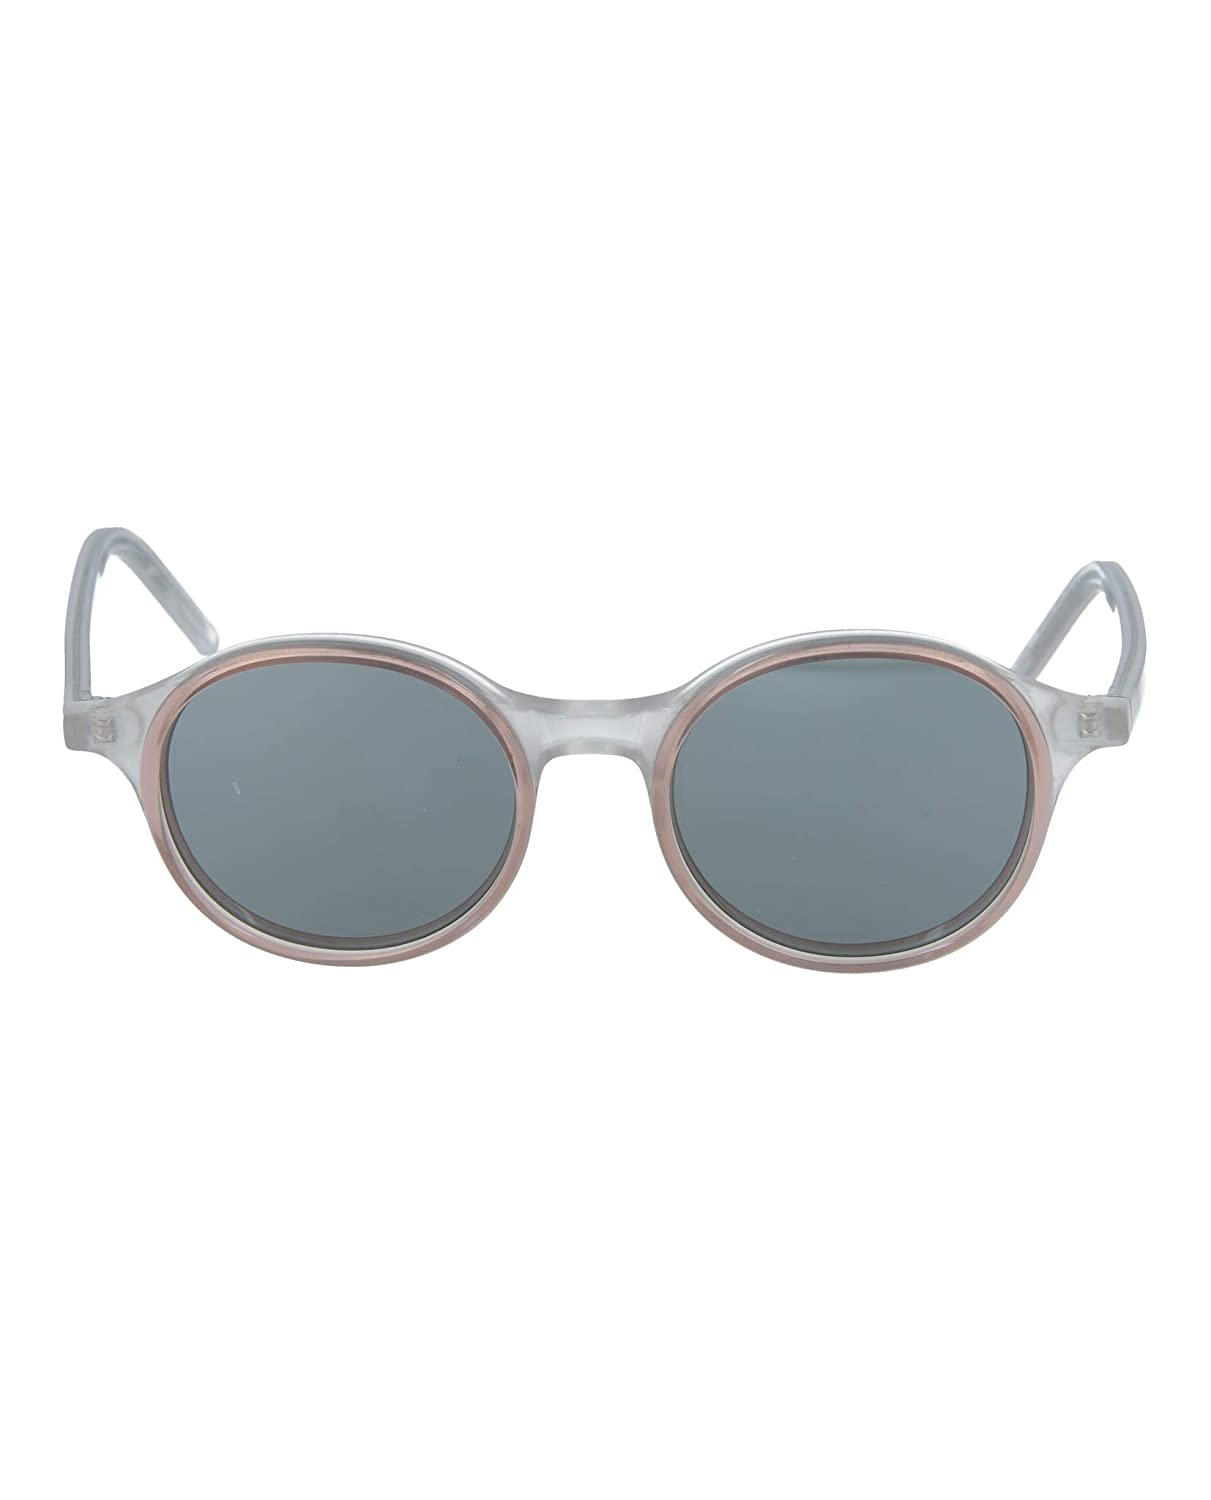 007 PINK SILVER GREY Sunglasses Tomas Maier TM 0004 S